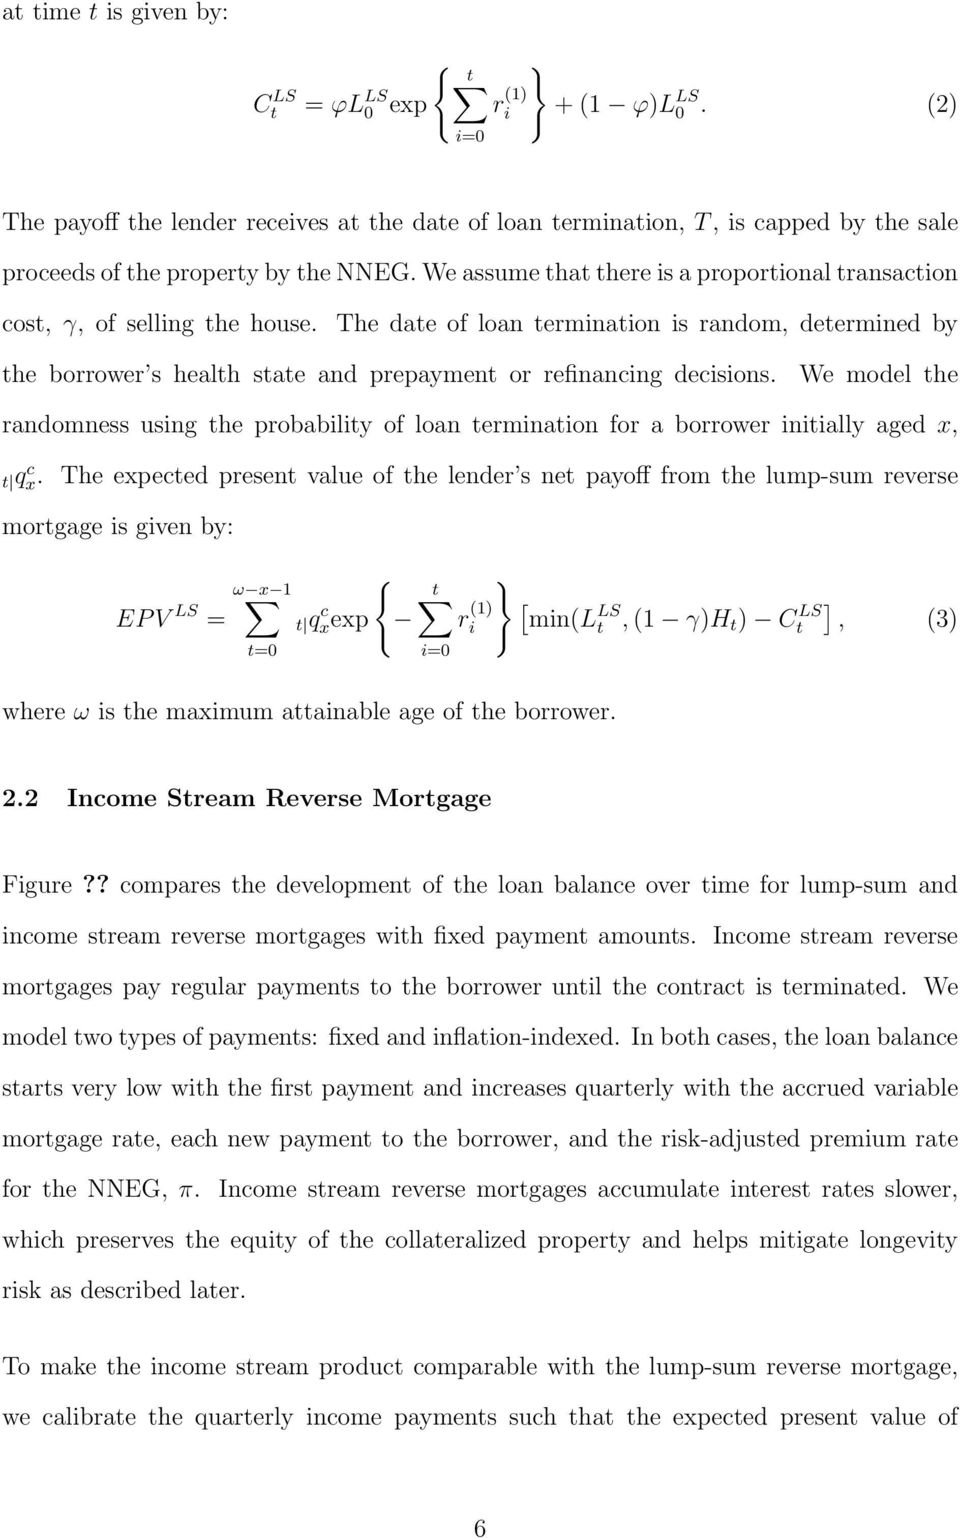 We model he randomness using he probabiliy of loan erminaion for a borrower iniially aged x, q c x.